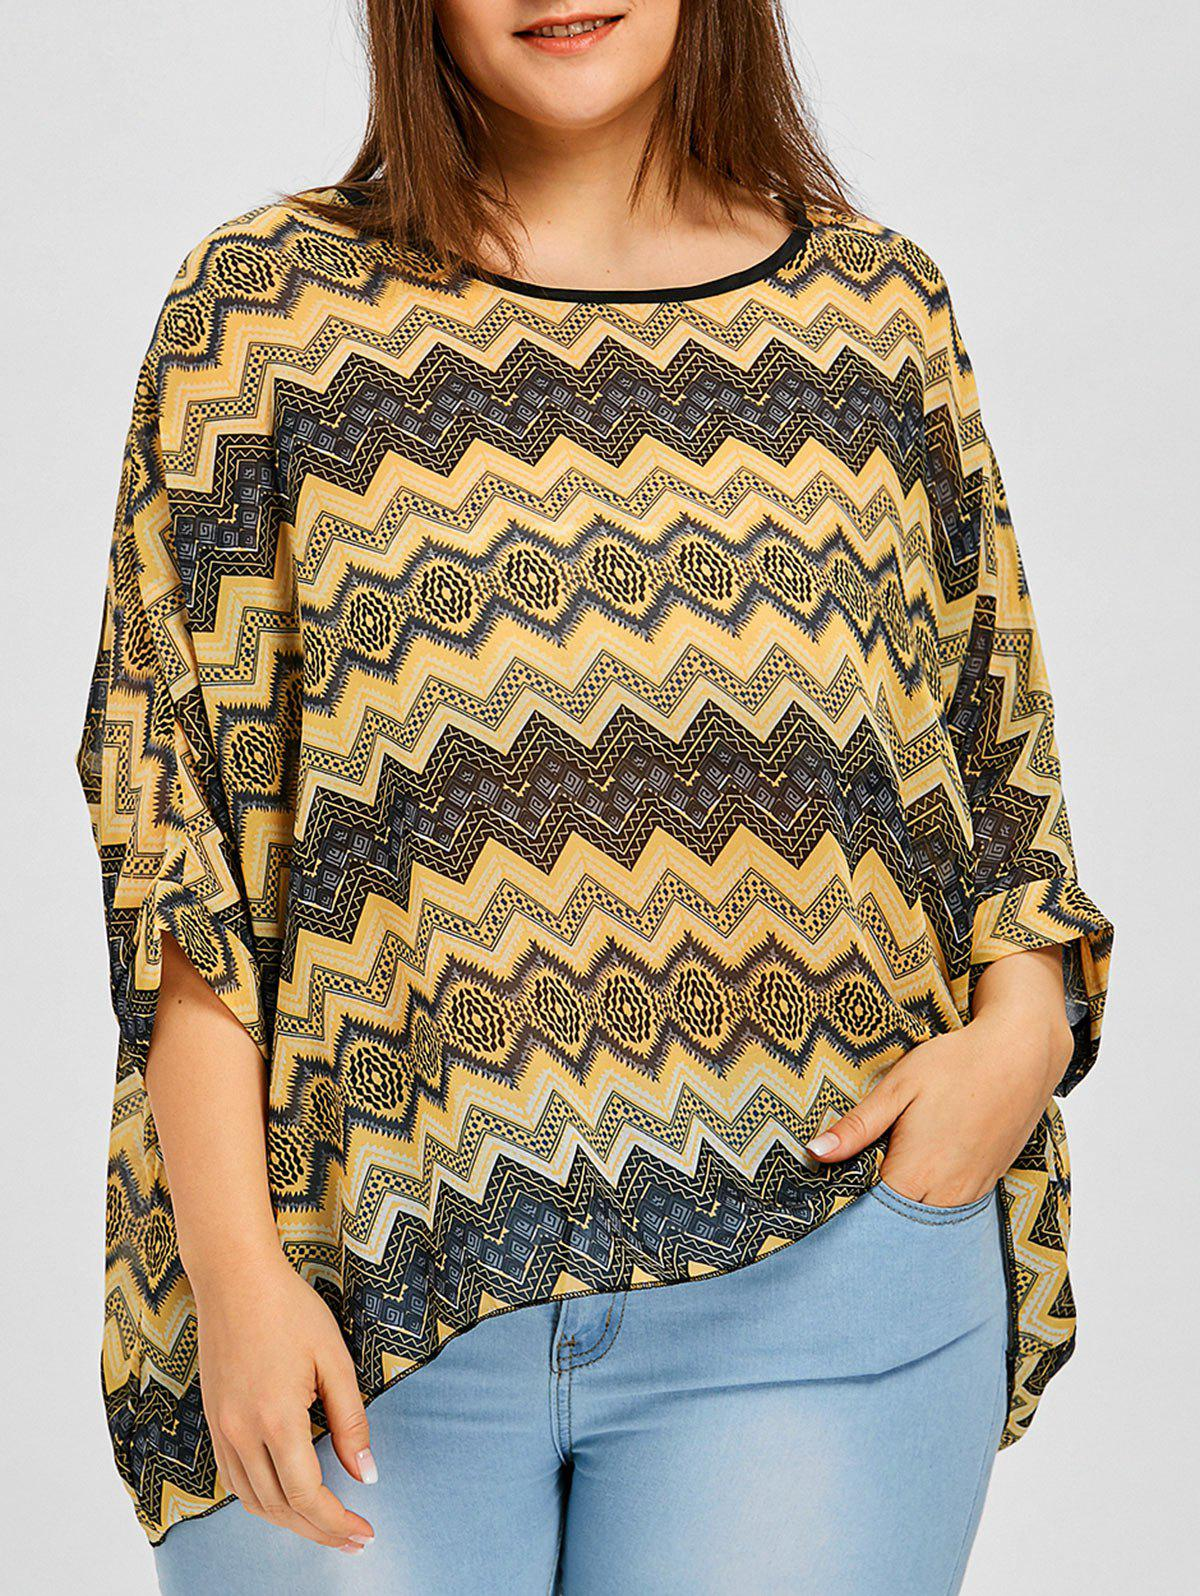 Chevron Plus Size Chiffon Batwing Blouse - multicolor ONE SIZE